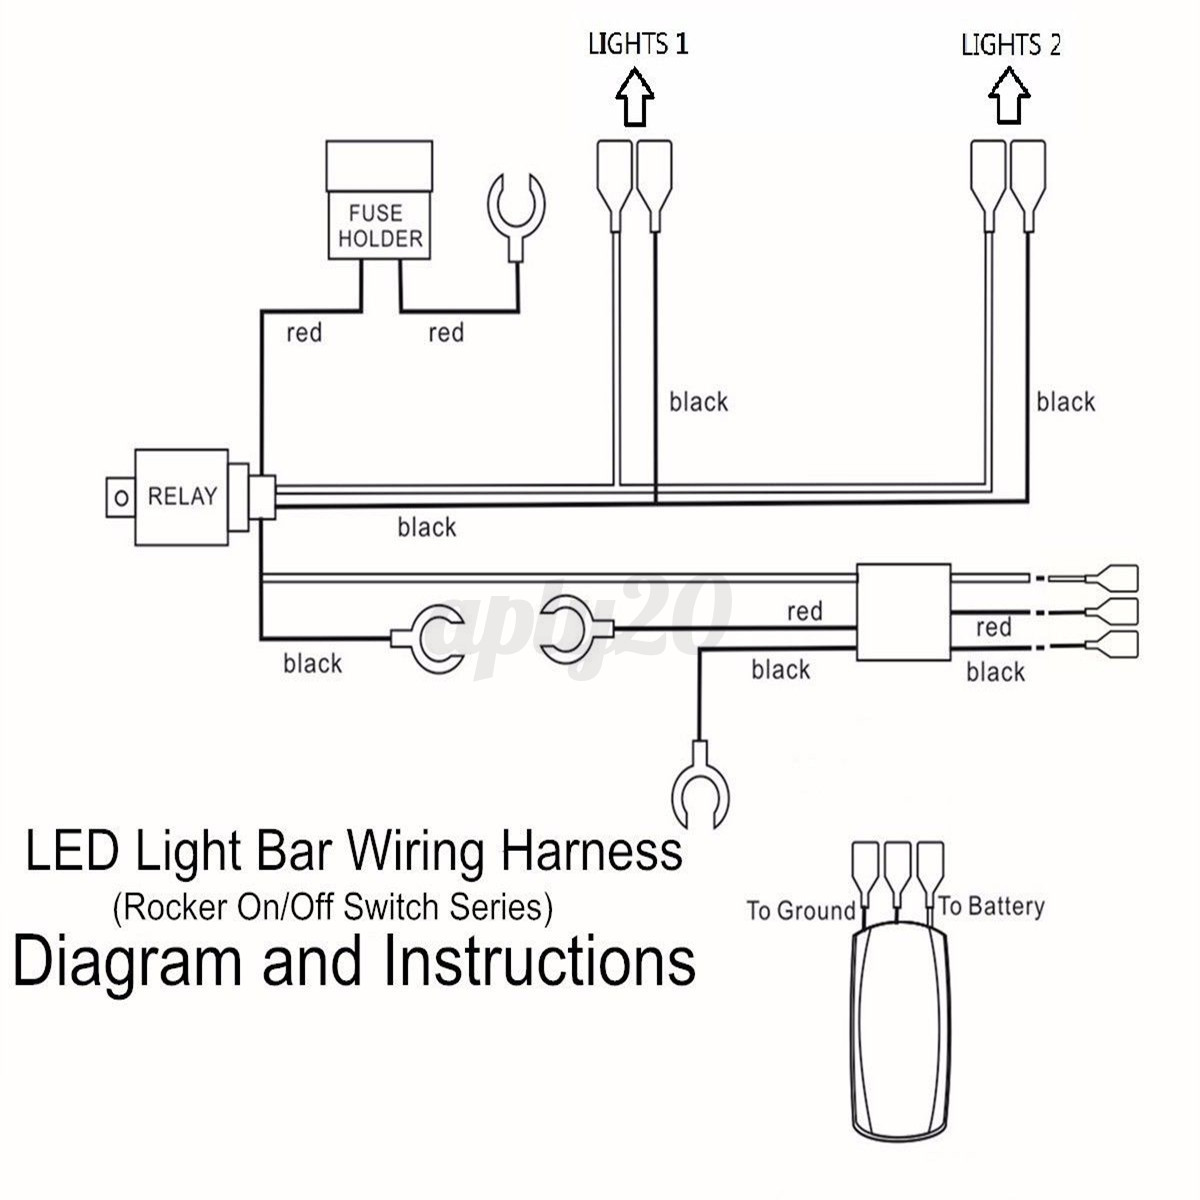 wipac driving lights wiring diagram wipac image spotlight wiring kit solidfonts on wipac driving lights wiring diagram